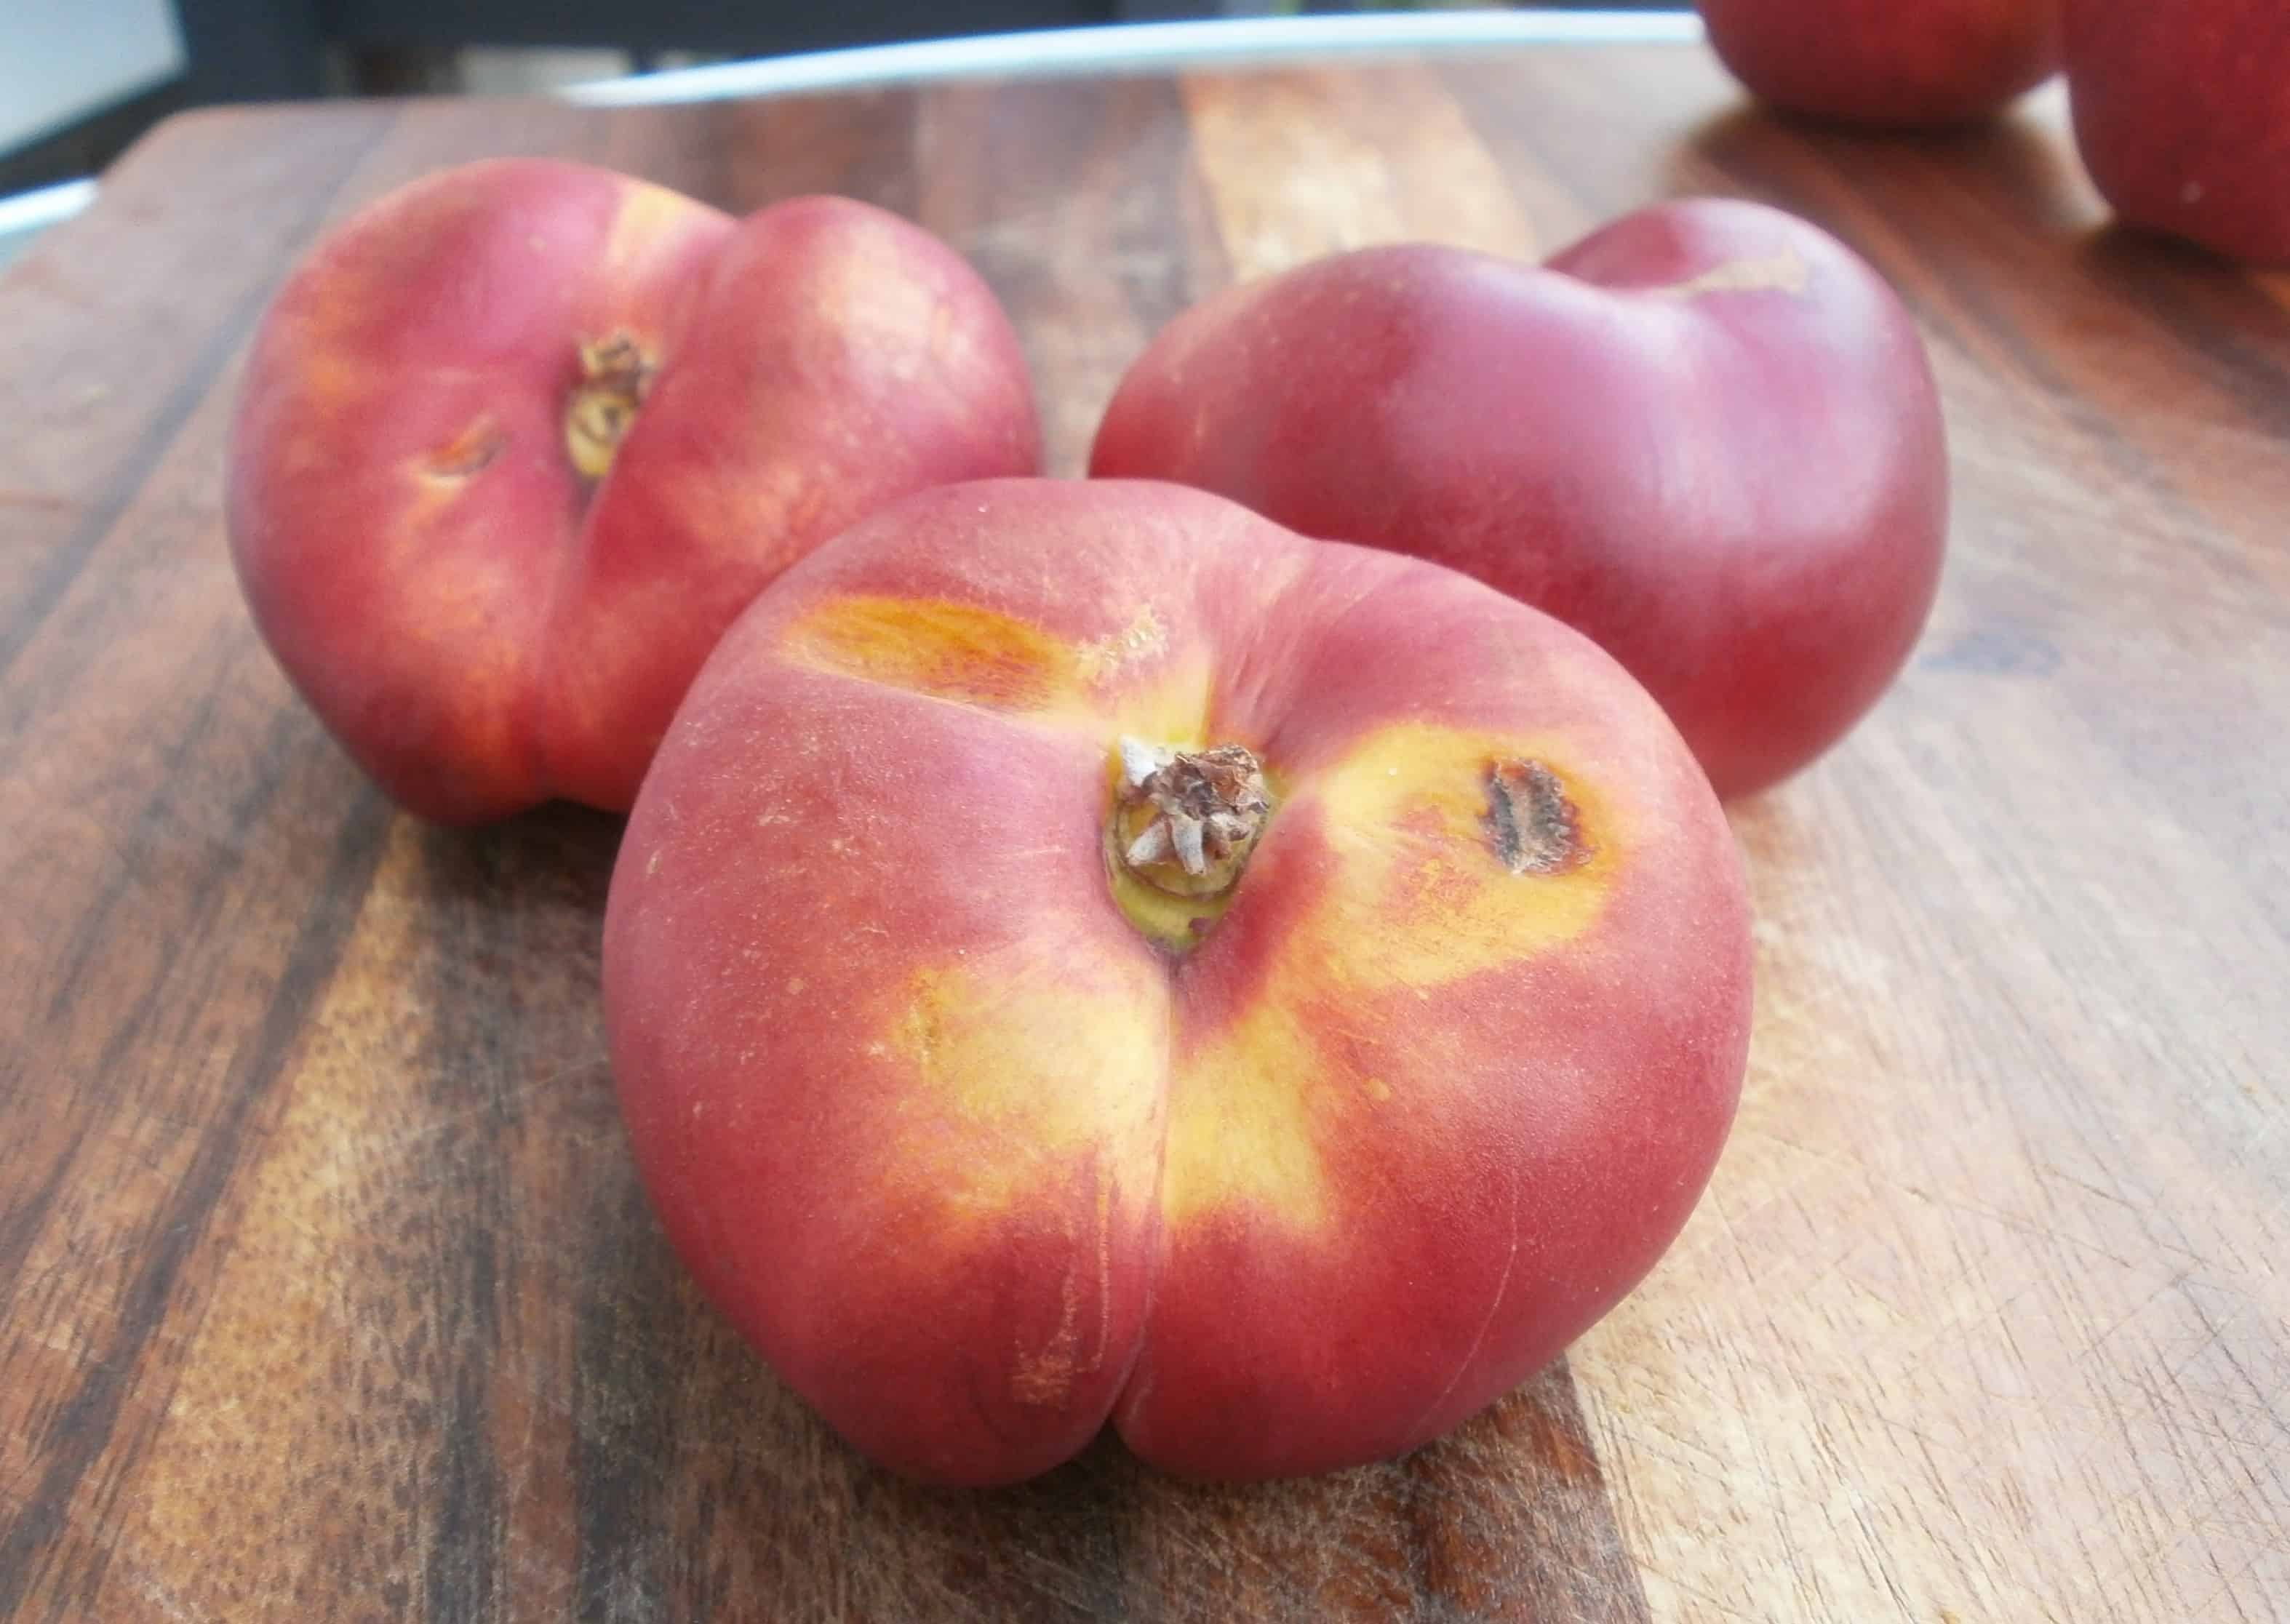 The ultimate in flat stone fruit - the Nectafire donut nectarine. Beautiful outside, bursting with flavor inside.